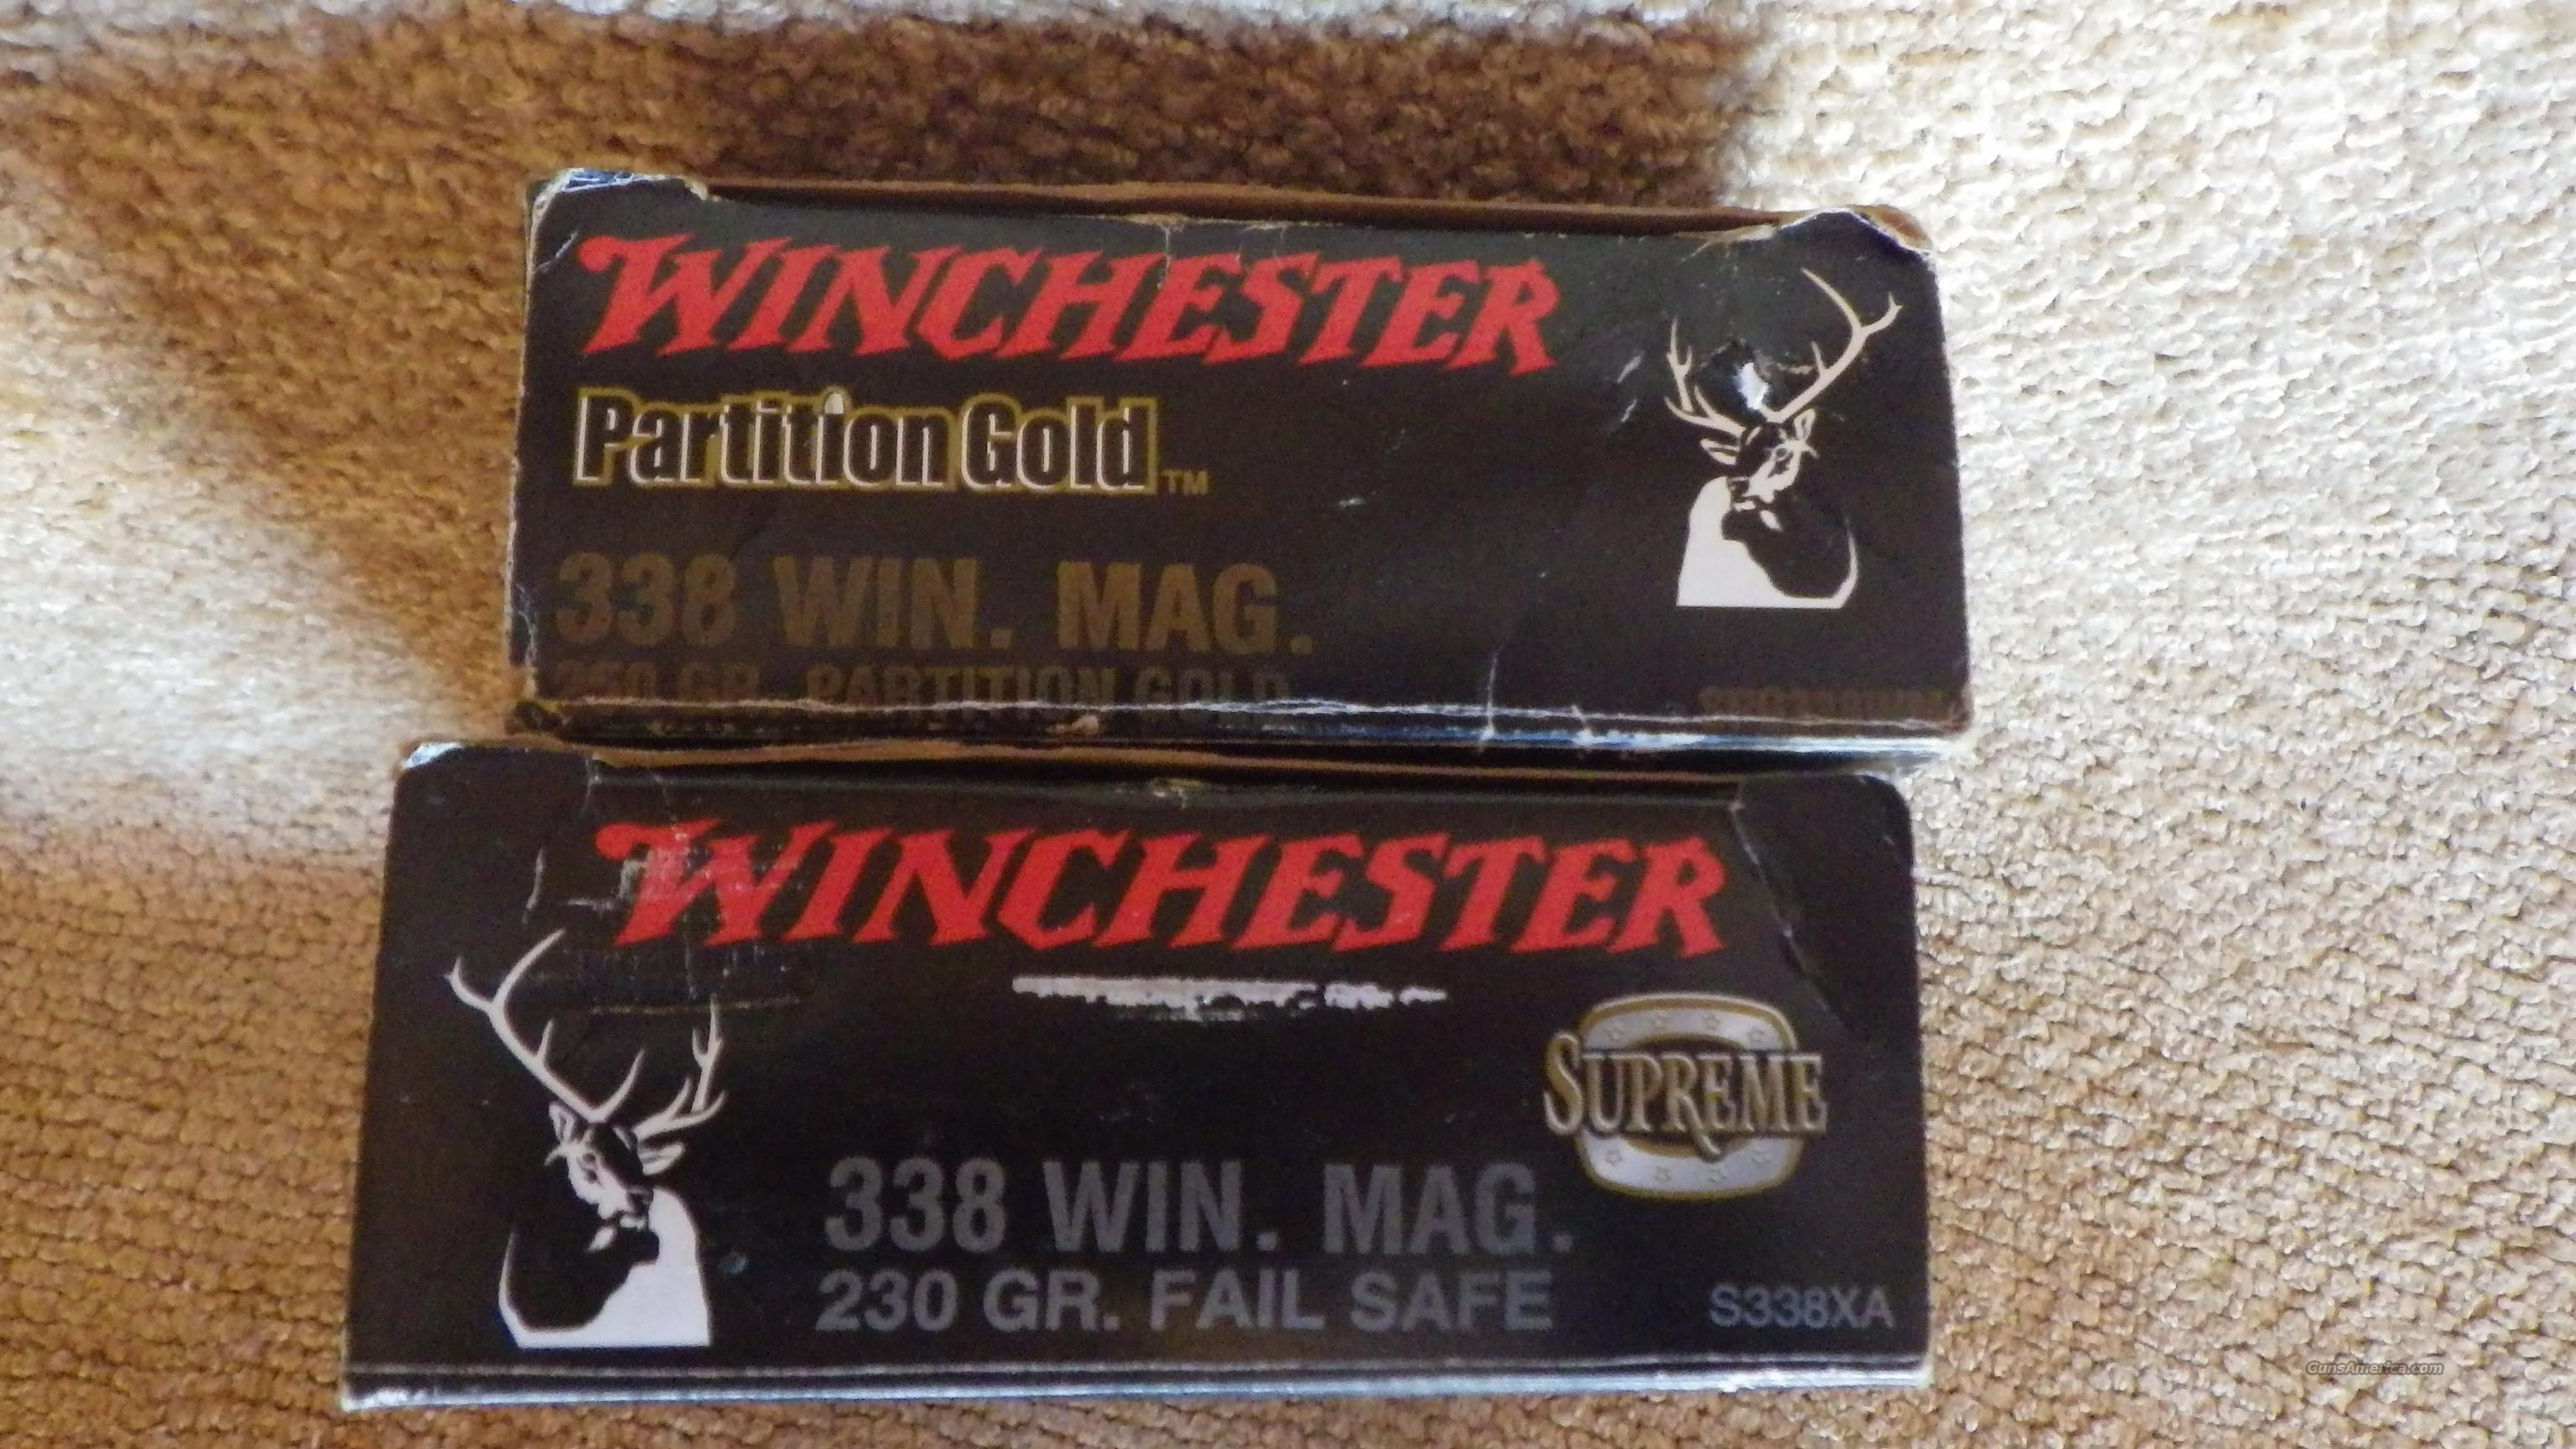 338 Win Mag Ammo 2 Boxes Winchester Supreme Ammo (1) 250 Partition Gold (1) Bx 230 Fail Safe  Non-Guns > Ammunition